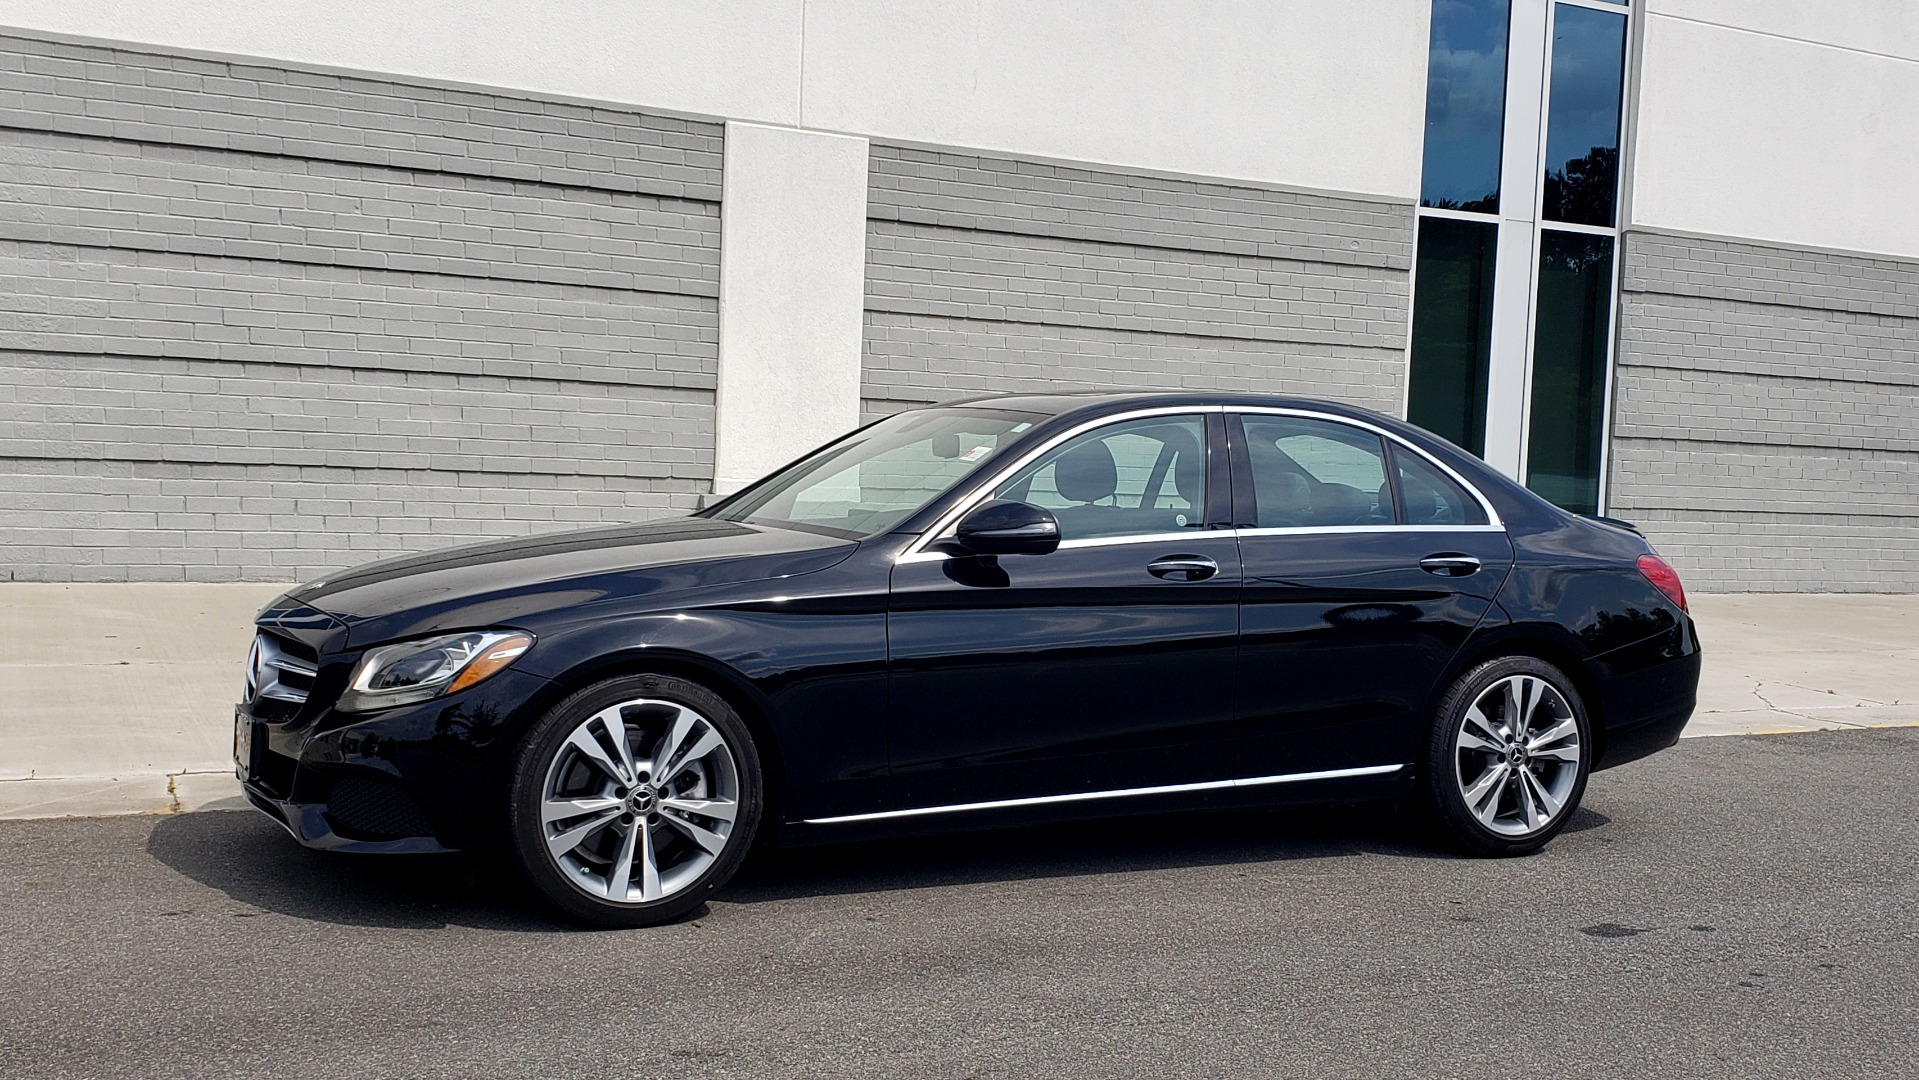 Used 2018 Mercedes-Benz C-CLASS C 300 PREMIUM / HTD STS / APPLE CARPLAY / 18IN WHEELS / REARVIEW for sale $24,795 at Formula Imports in Charlotte NC 28227 3